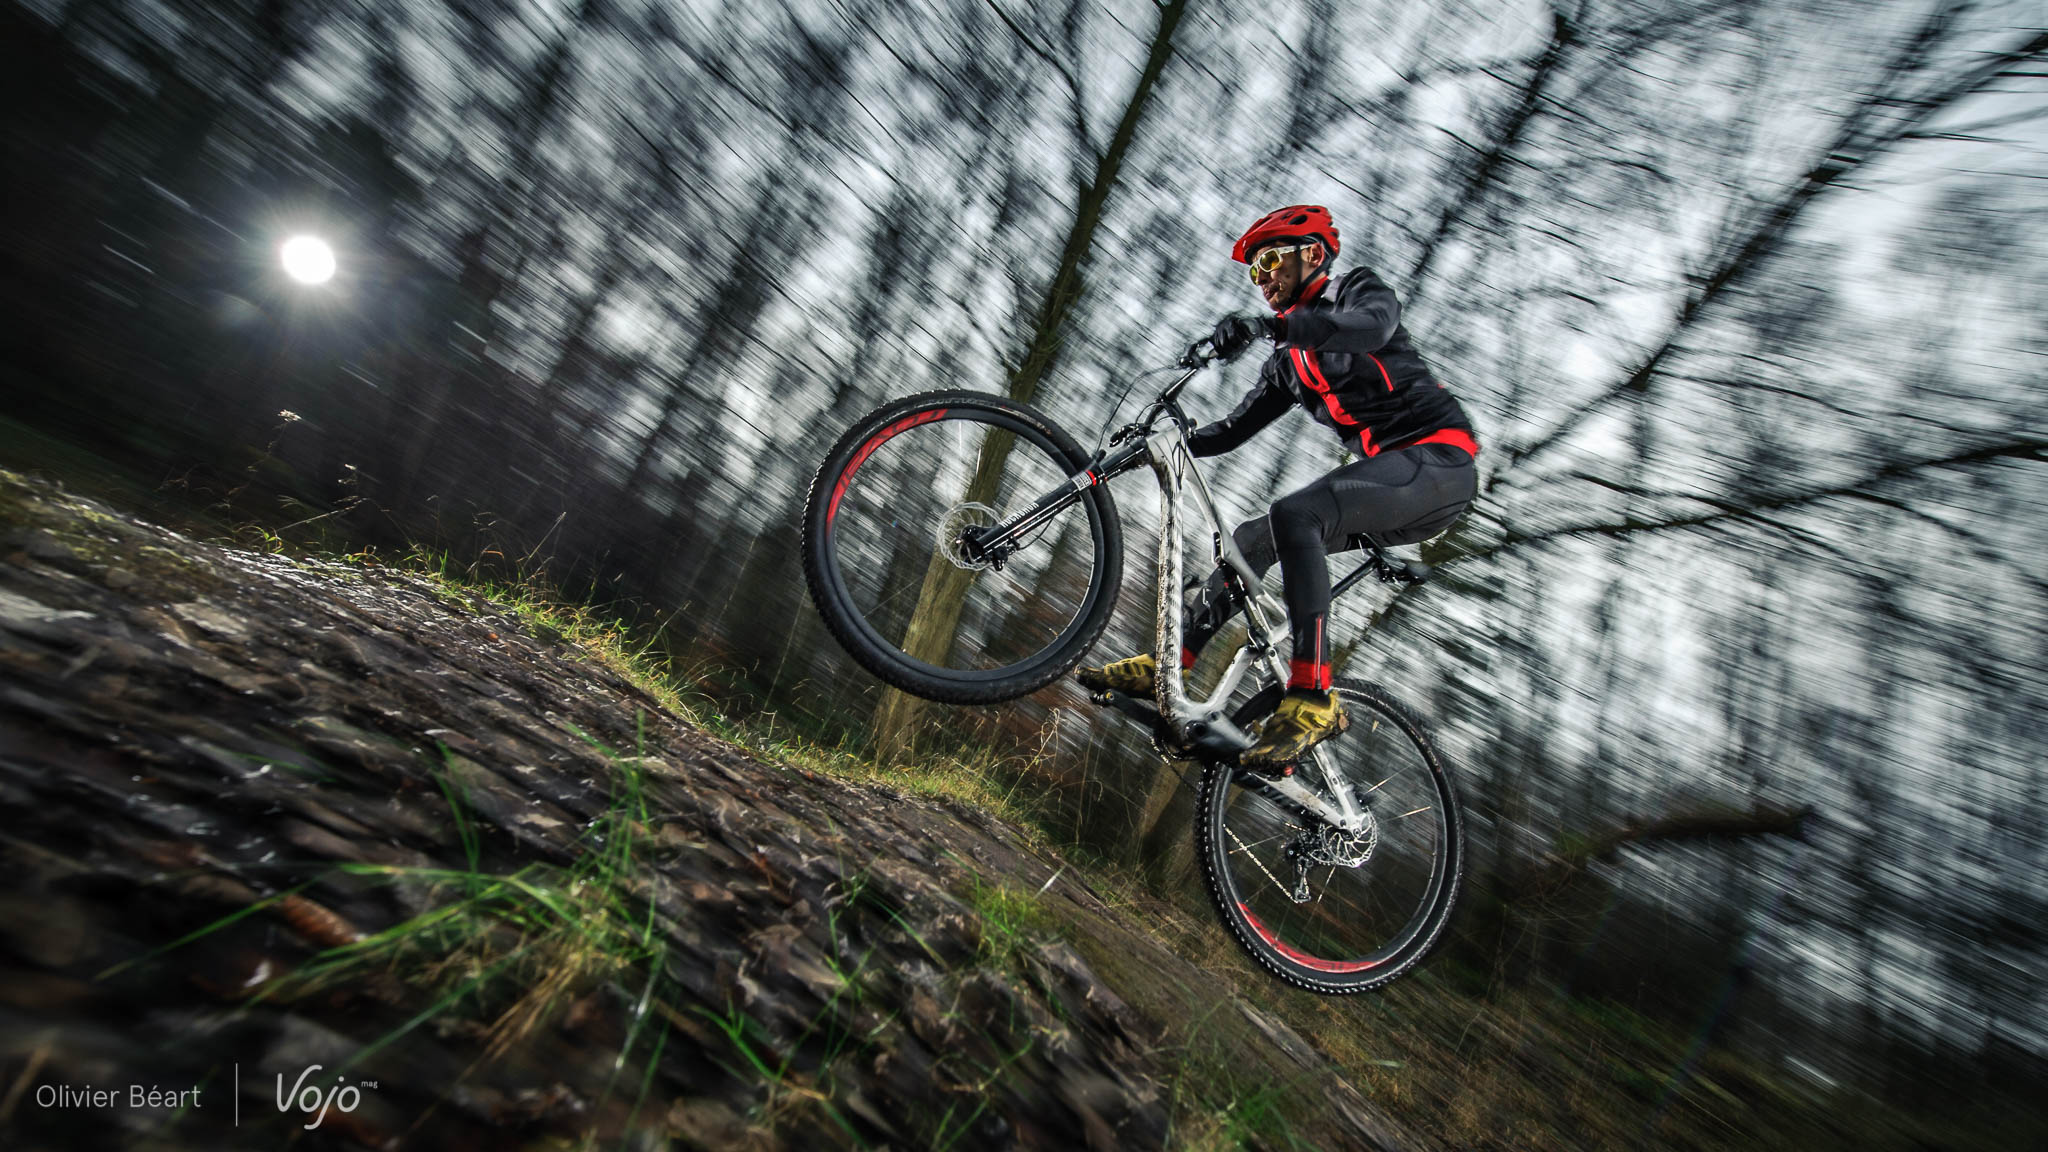 Specialized_Epic_Expert_WorldCup_Copyright_OBeart_VojoMag-4